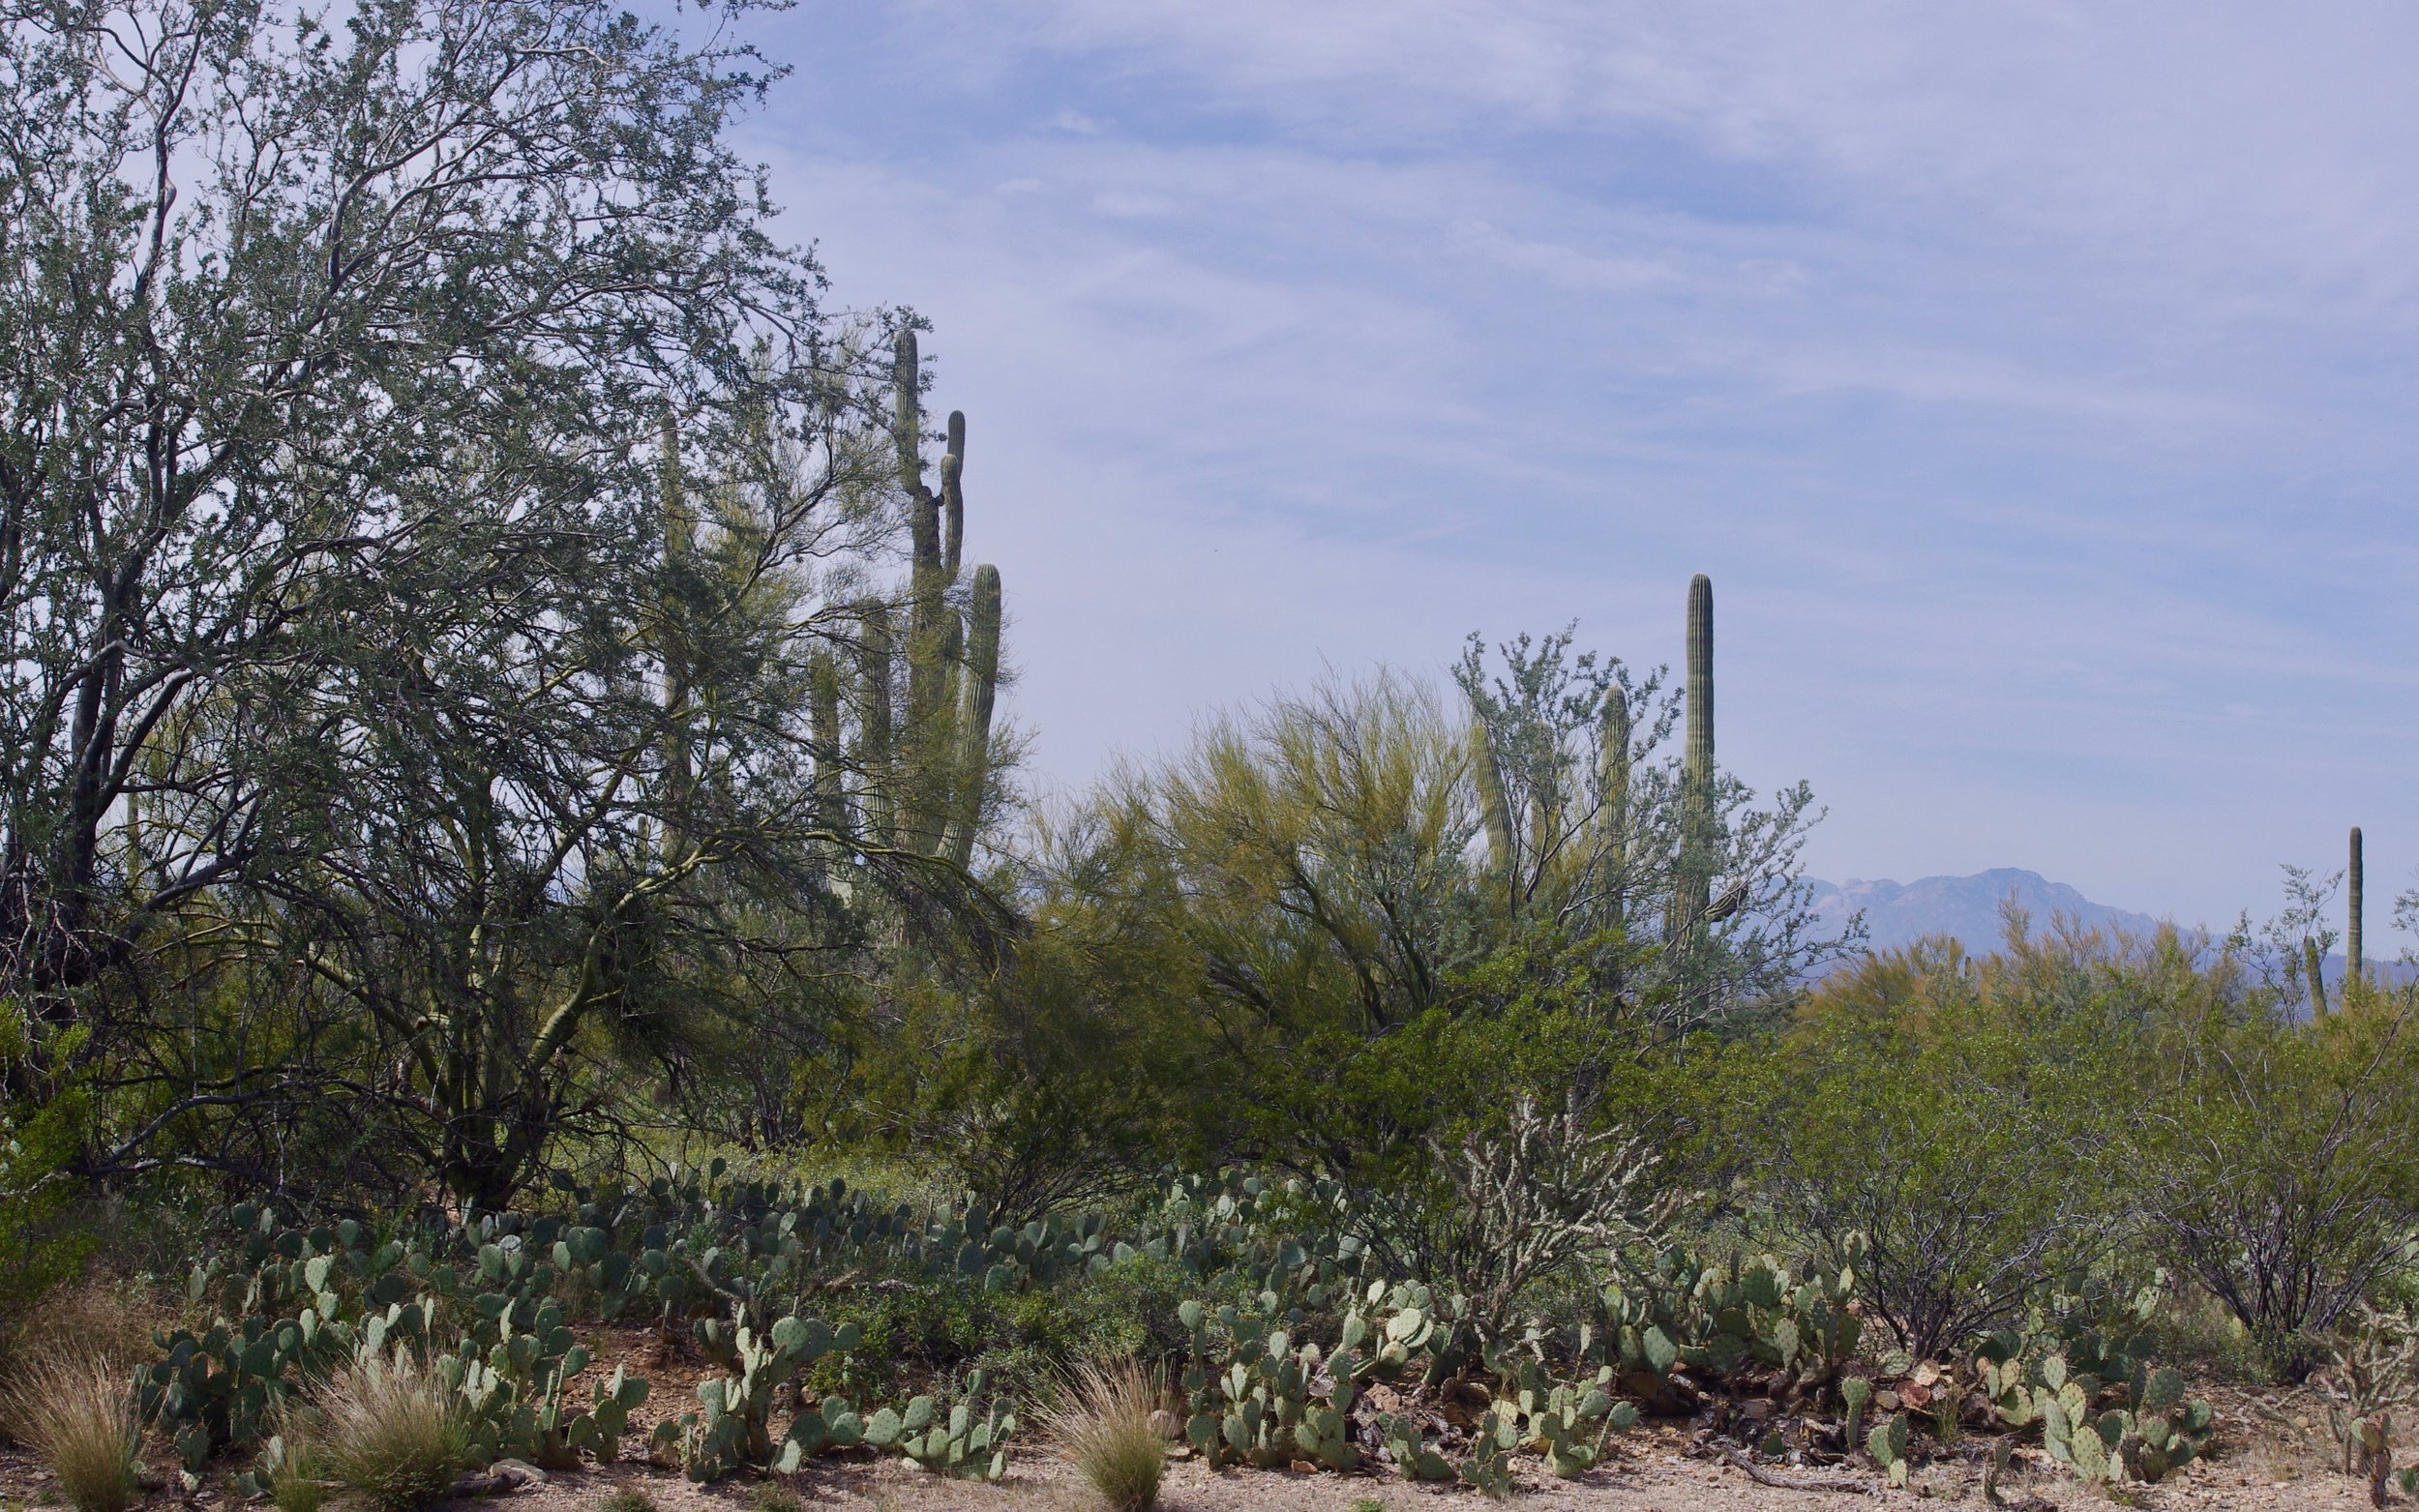 Here is part of Saguaro National Park (west unit), also west and slightly north of Tucson. Plenty of saguaro here plus the ubiquitous Prickly Pear. Although this photo doesn't show any, there are also Barrel Cactus, Cholla and Hedgehog Cactus. More on that in a future installment.